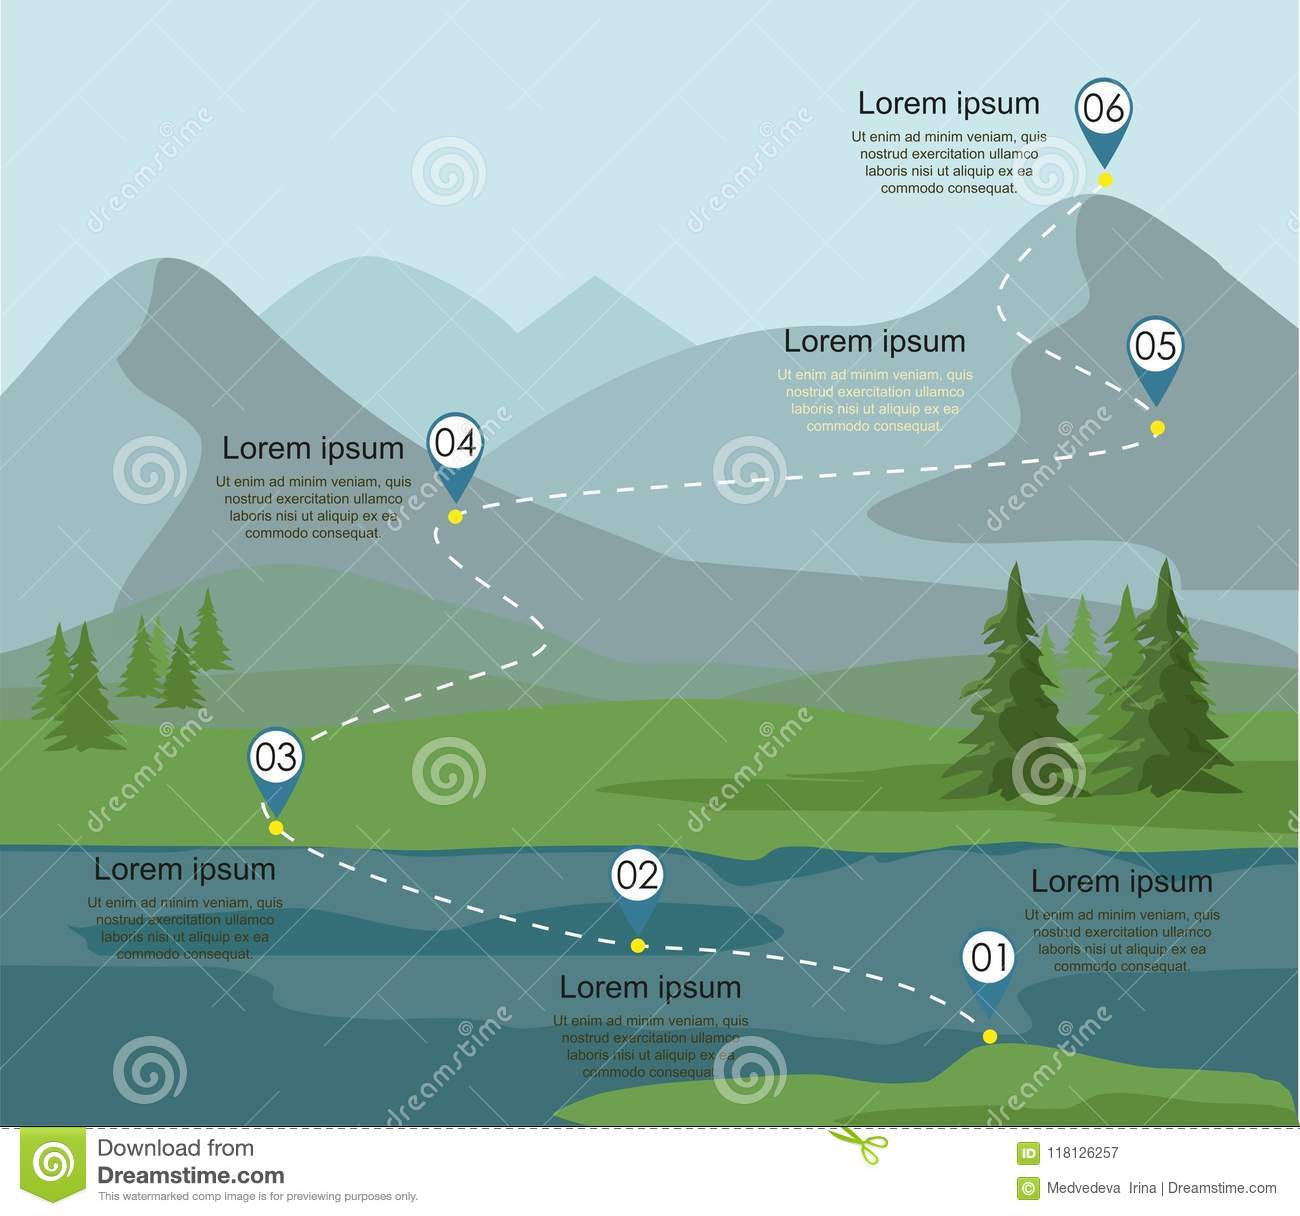 tourism route infographic layers mountain landscape fir forest river tourism route infographic layers mountain 118126257 tourism route infographic layers of mountain landscape with fir